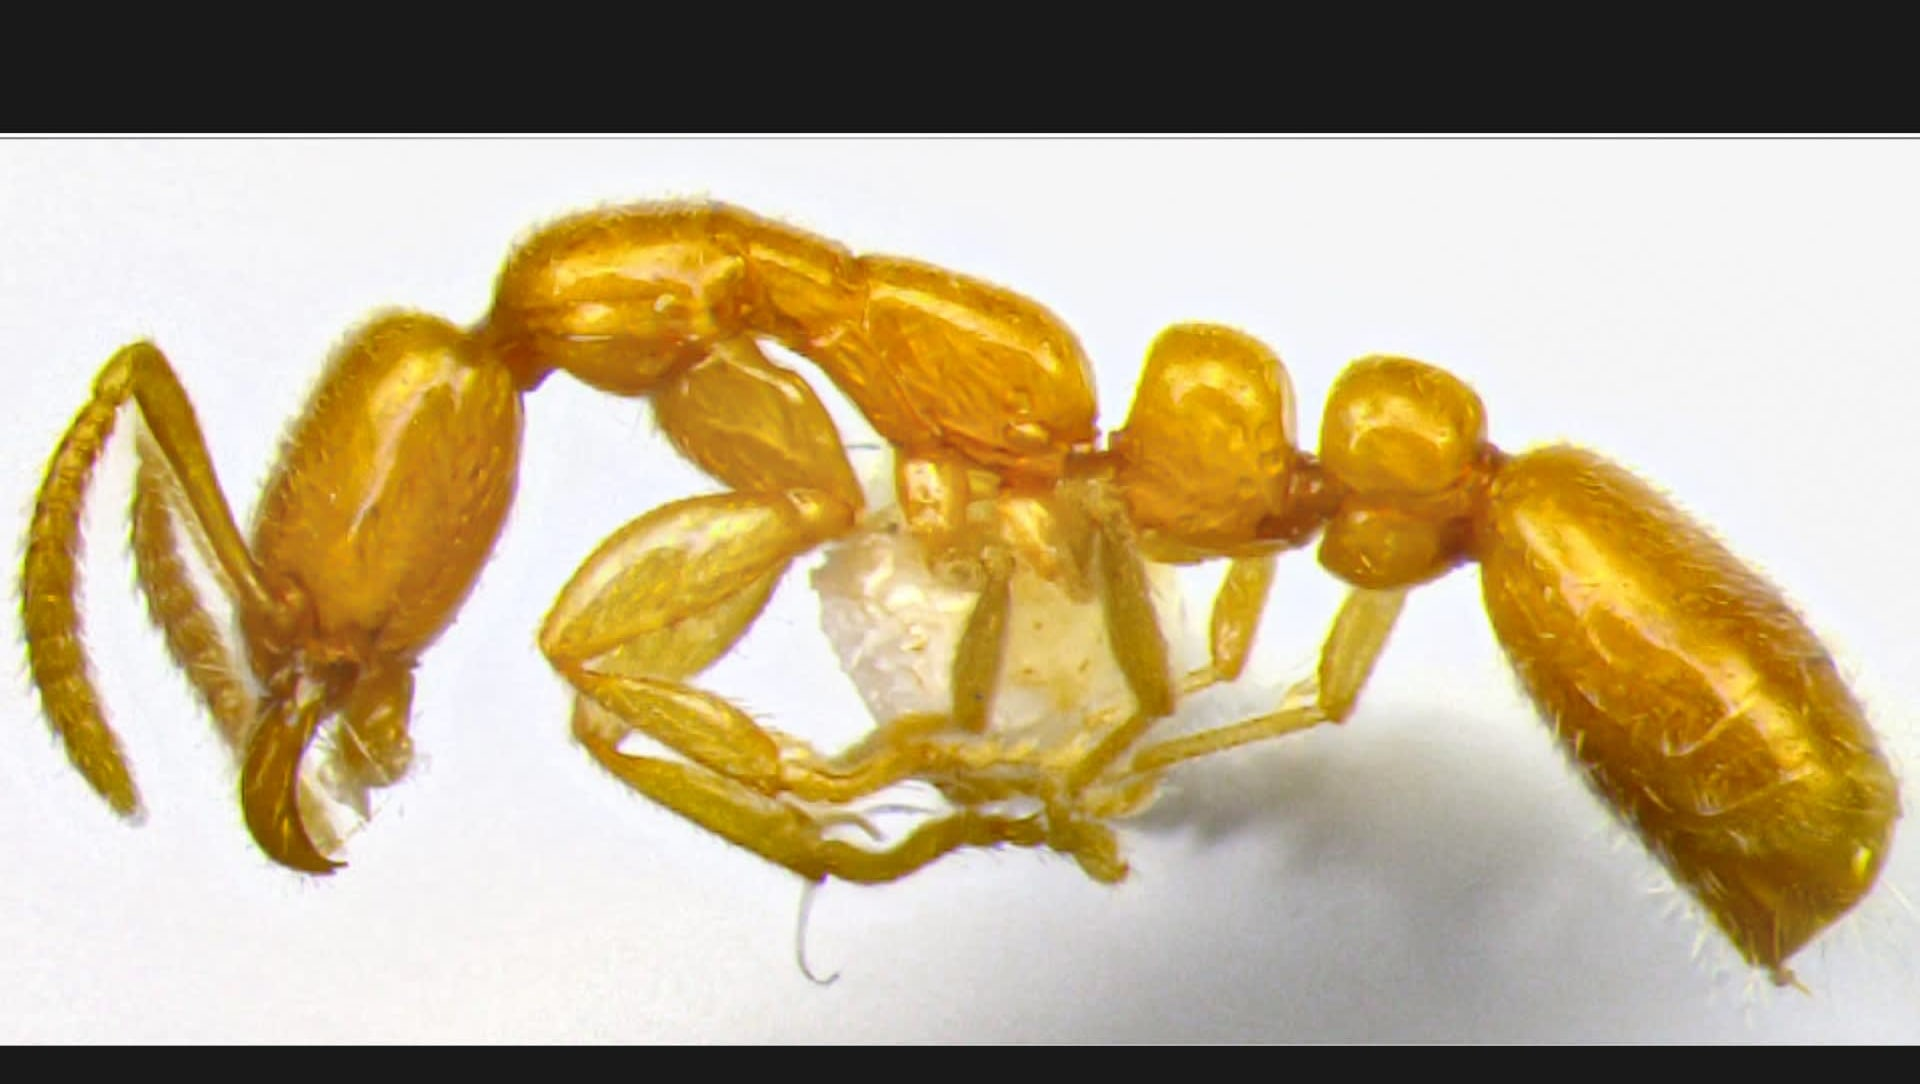 New Underground Ant Discovered from Goa